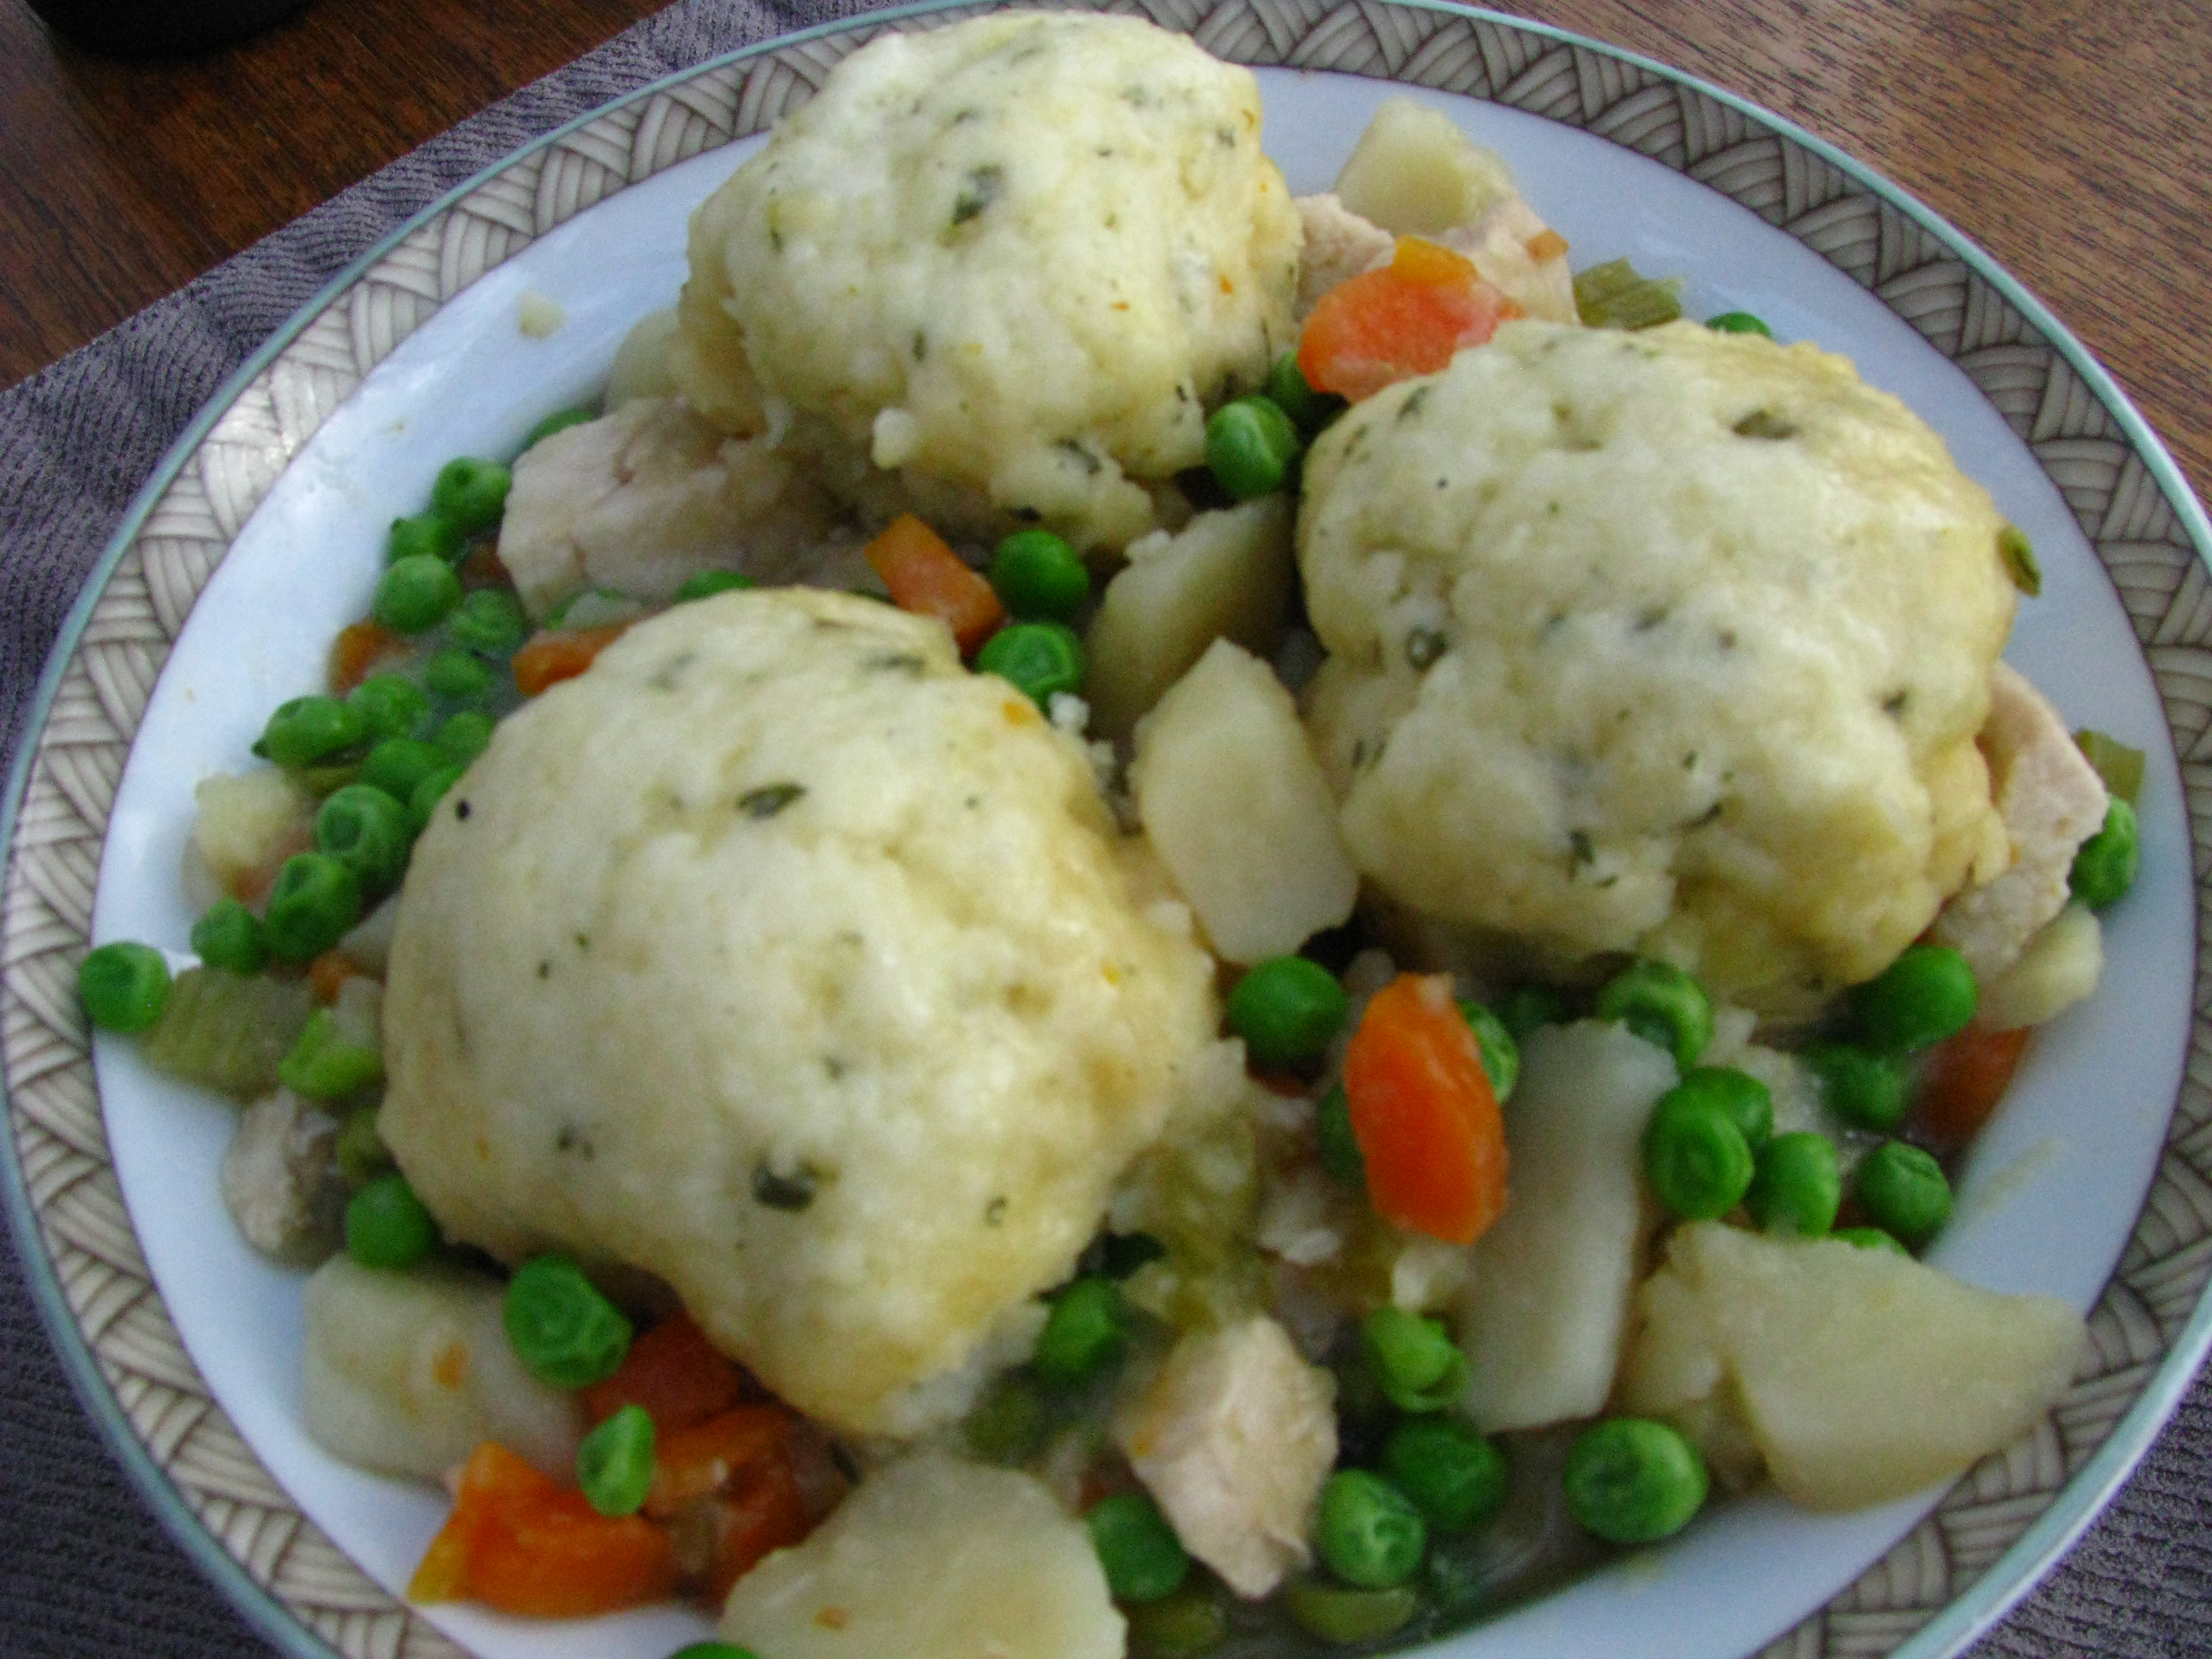 Top comfort food chicken and dumplings recipe favorites made chicken and vegetables top recipe makeover forumfinder Gallery